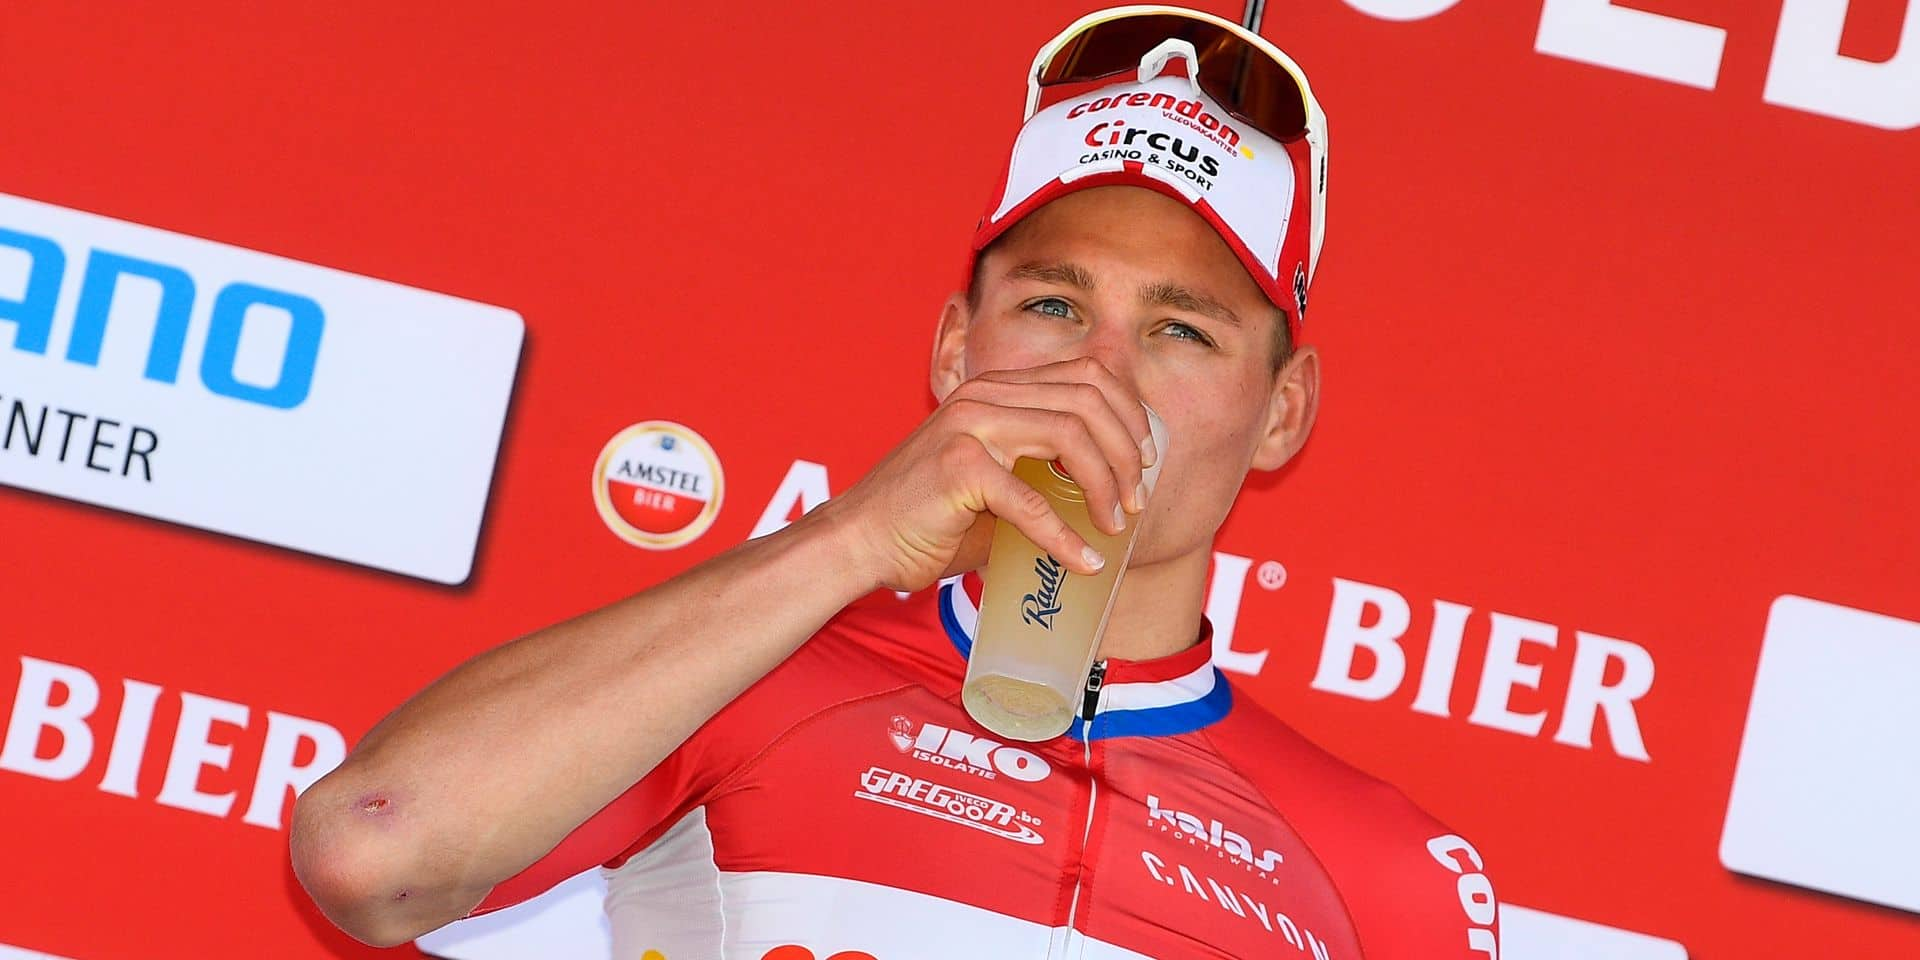 Dutch Mathieu Van der Poel of Corendon-Circus celebrates on the podium after winning the 'Amstel Gold Race' one day cycling race, 263 km from Maastricht to Berg en terblijt, The Netherlands, Sunday 21 April 2019. BELGA PHOTO YORICK JANSENS